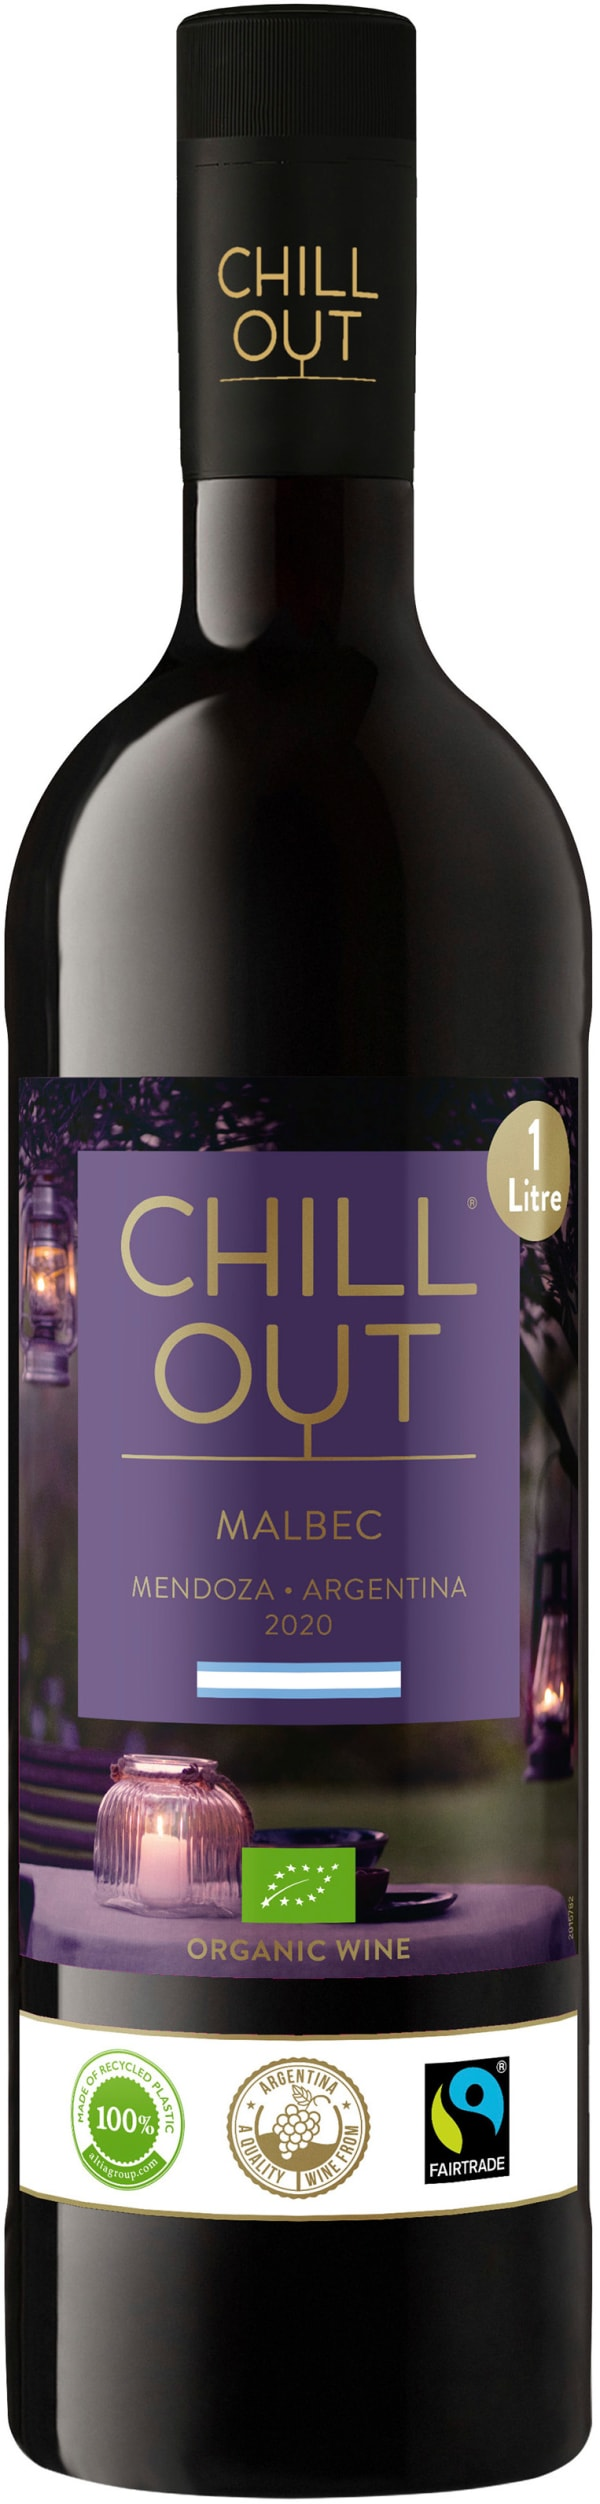 Chill Out Malbec Organic Argentina 2020 plastic bottle